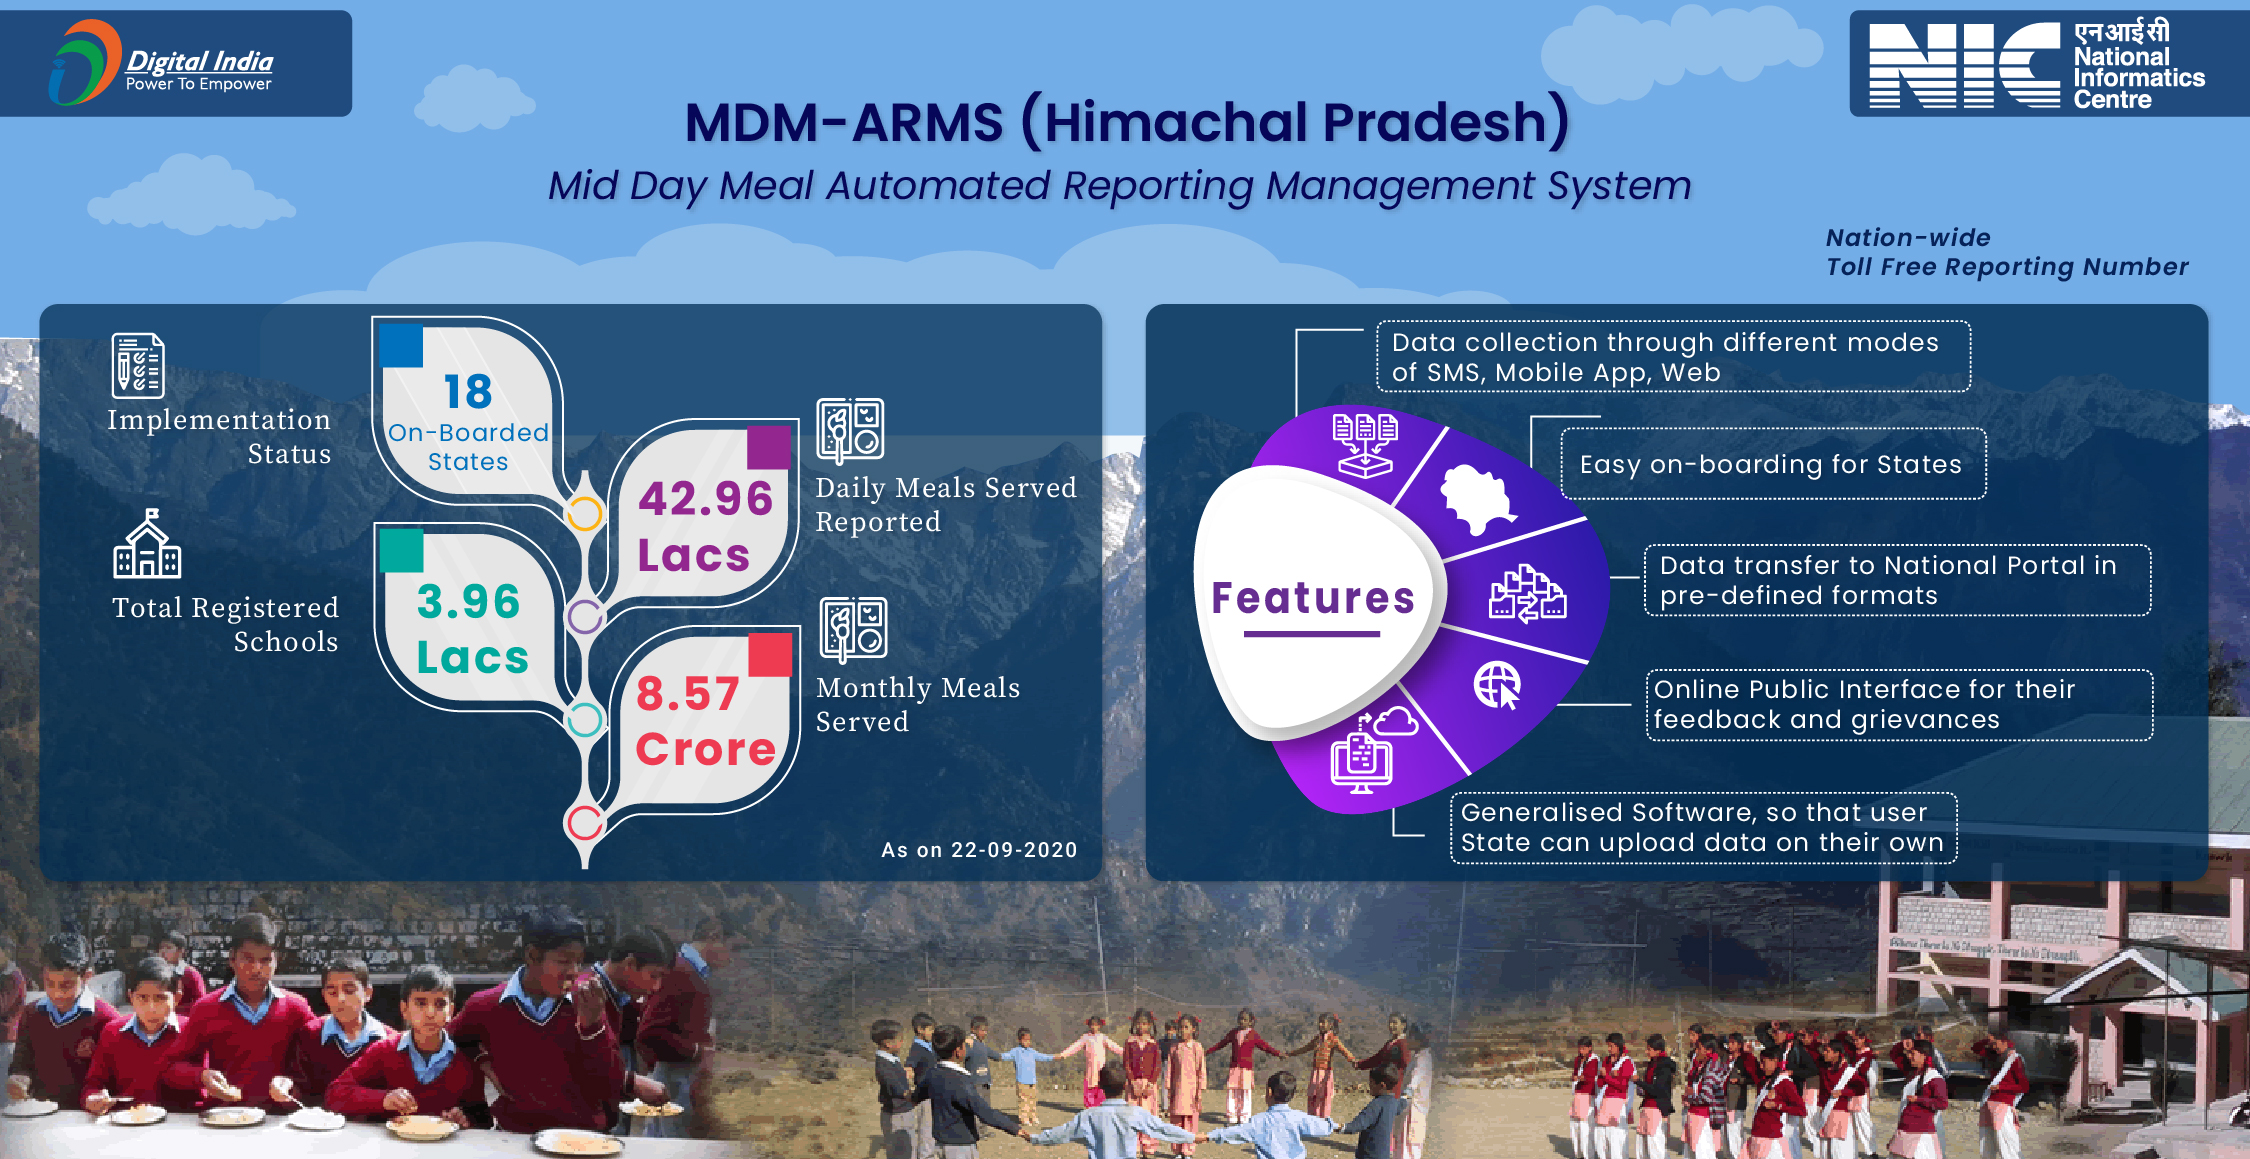 MDM-ARMS Mid Day Meal Automated Reporting Management System